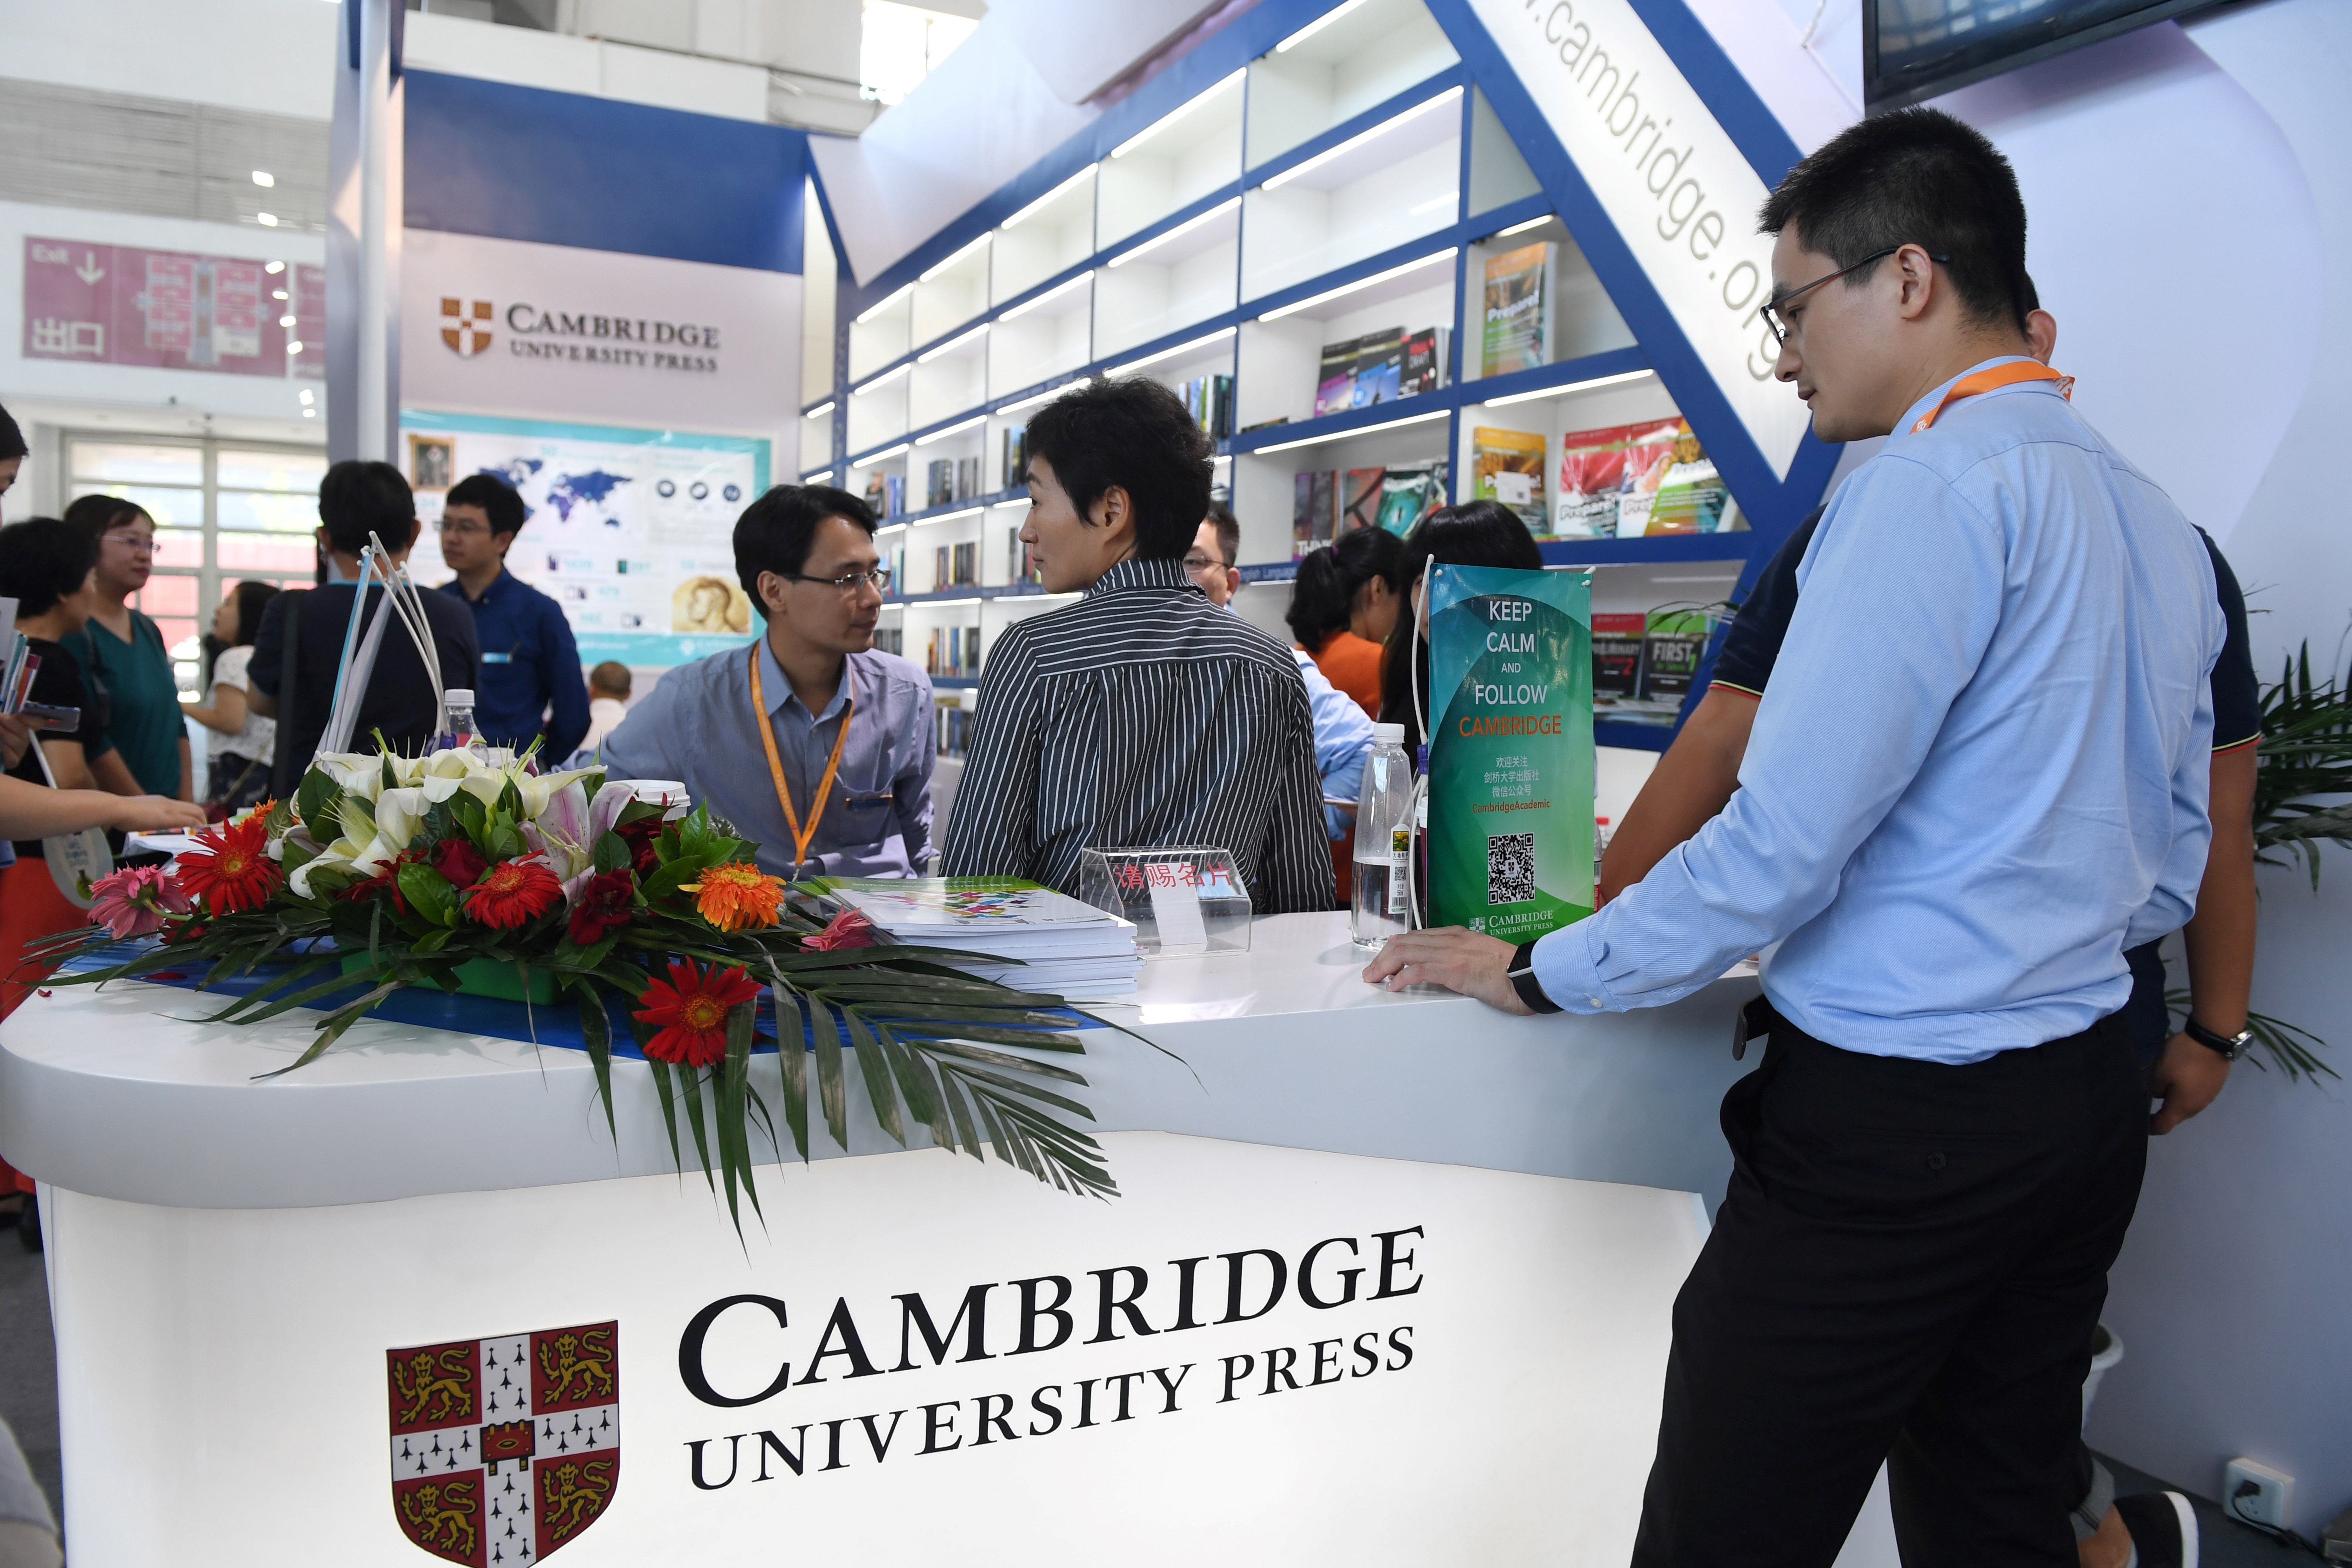 People at the Cambridge University Press at the Beijing International Book Fair in Beijing on Aug. 23, 2017. Just days after an outcry over an attempt to censor a British academic journal in China, hundreds of international publishing houses are courting importers at a major book fair in Beijing. (GREG BAKER/AFP/Getty Images)